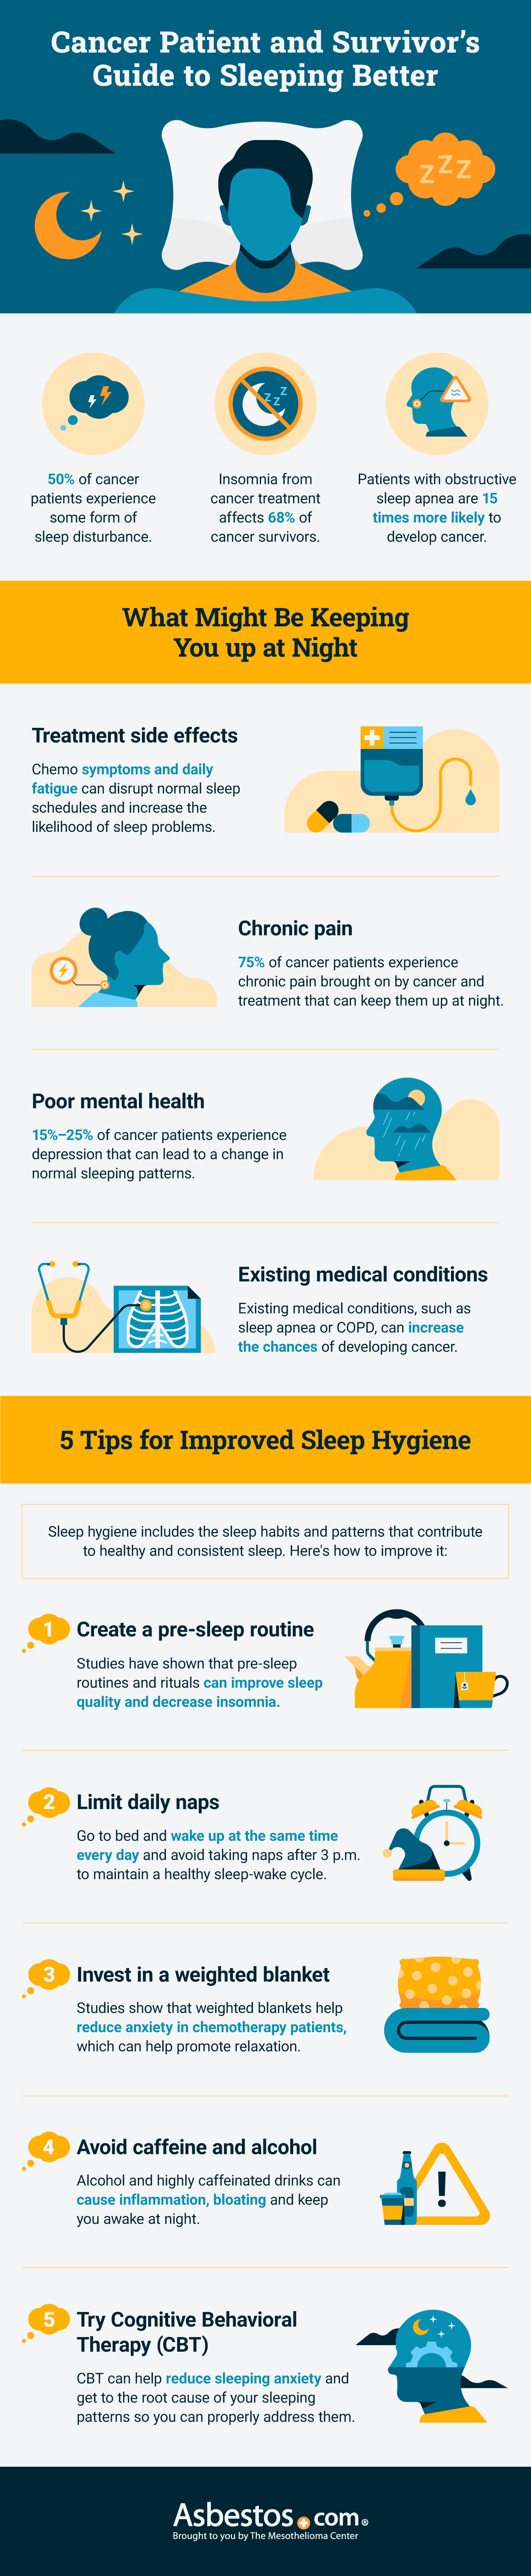 Cancer patient and survivor's guide to sleeping better